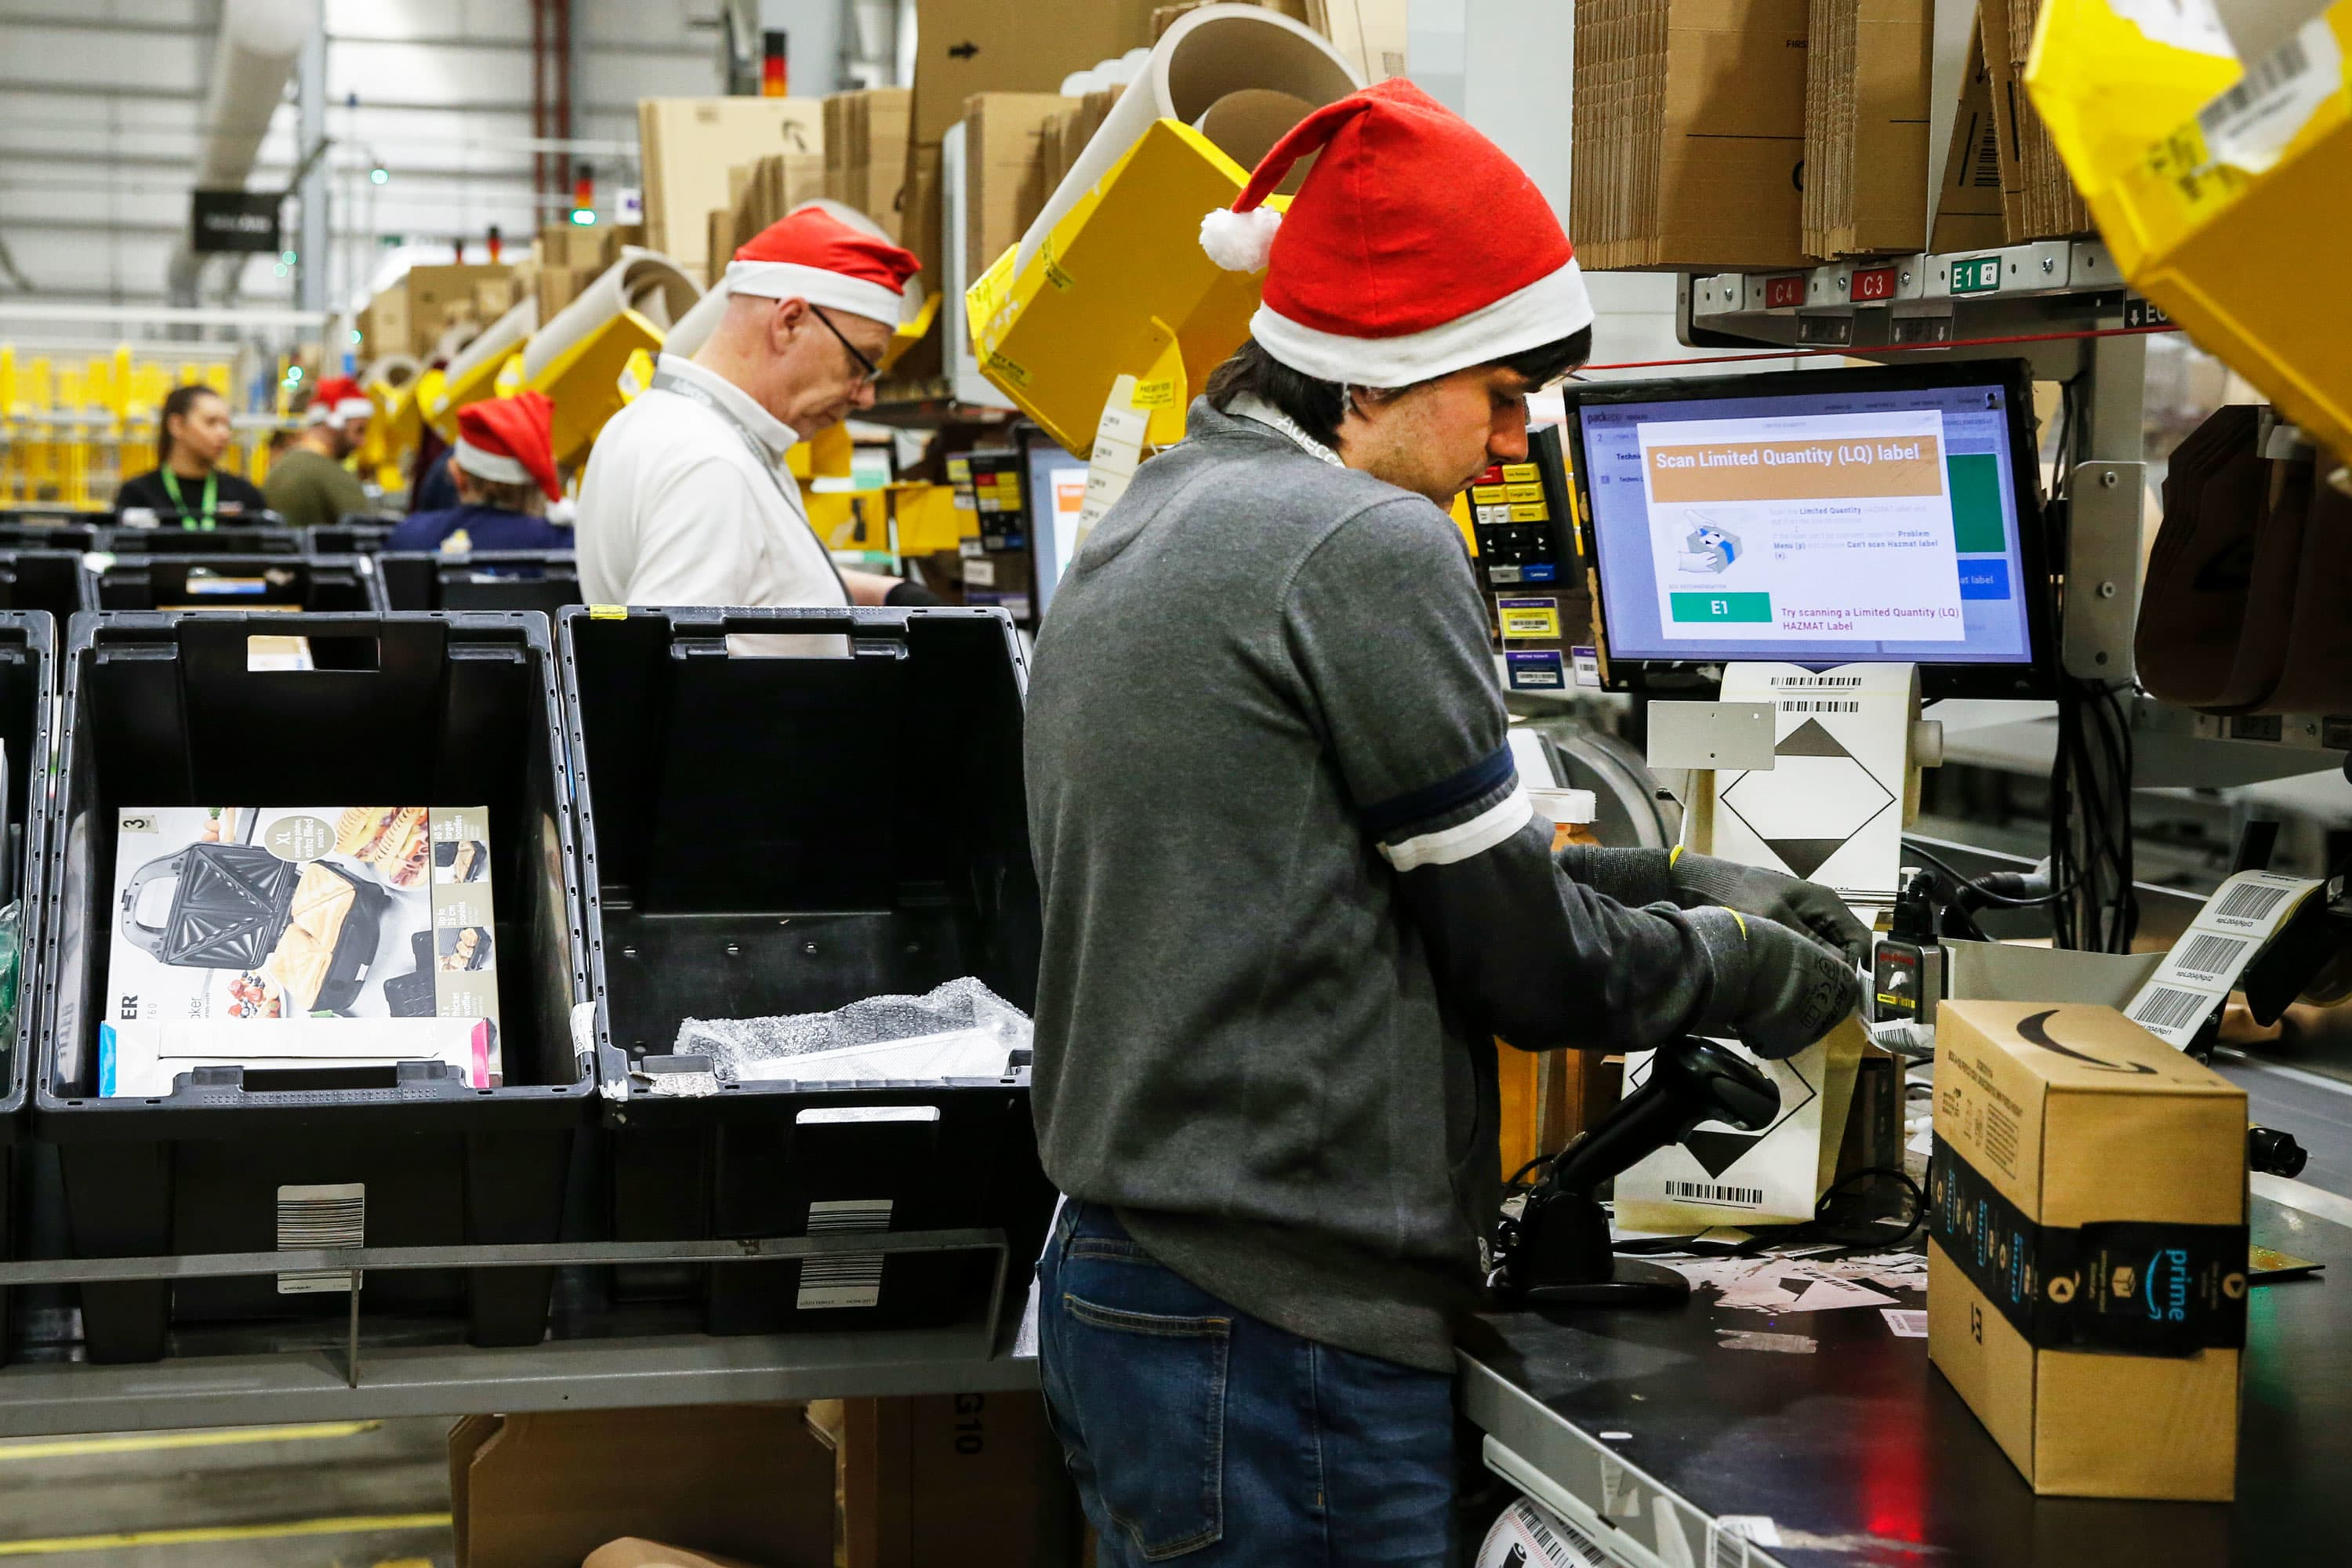 November's jobs report to show pick-up in pace from October, but mostly because of GM effect